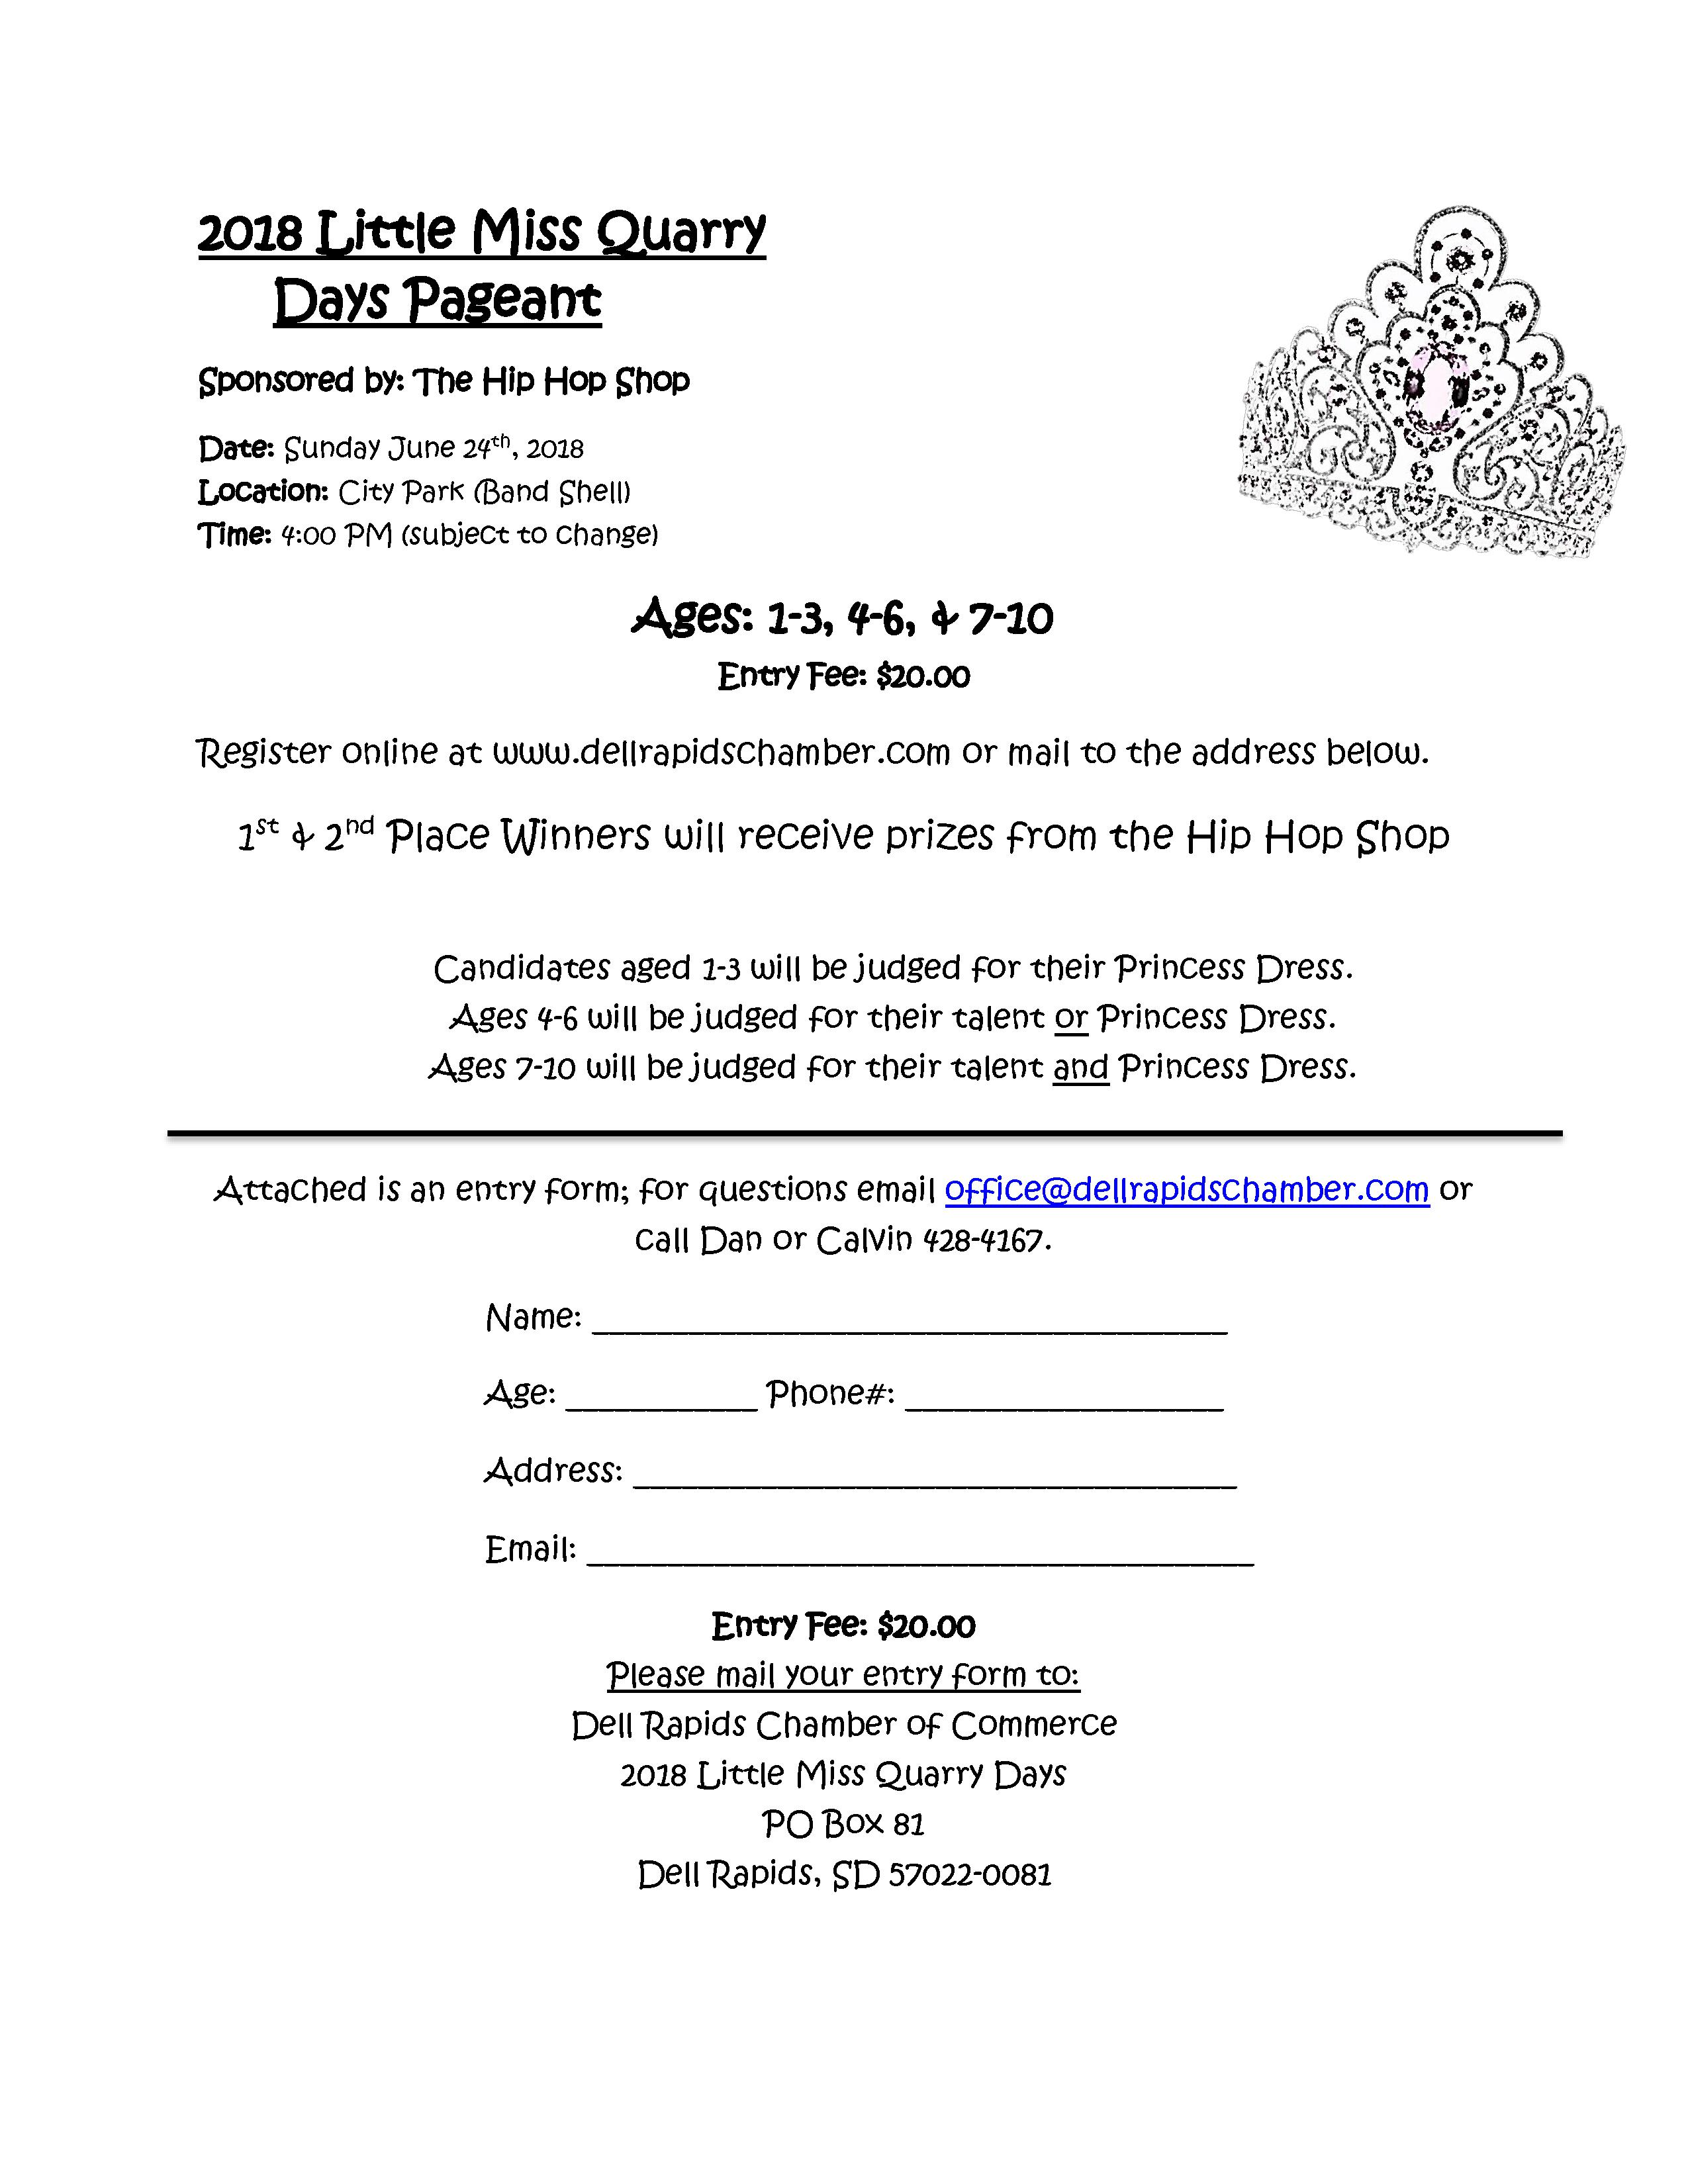 Little Miss Quarry Days Pageant 2018 Sign Up Registration Dell Rapids South Dakota Dell Rapids Chamber of Commerce